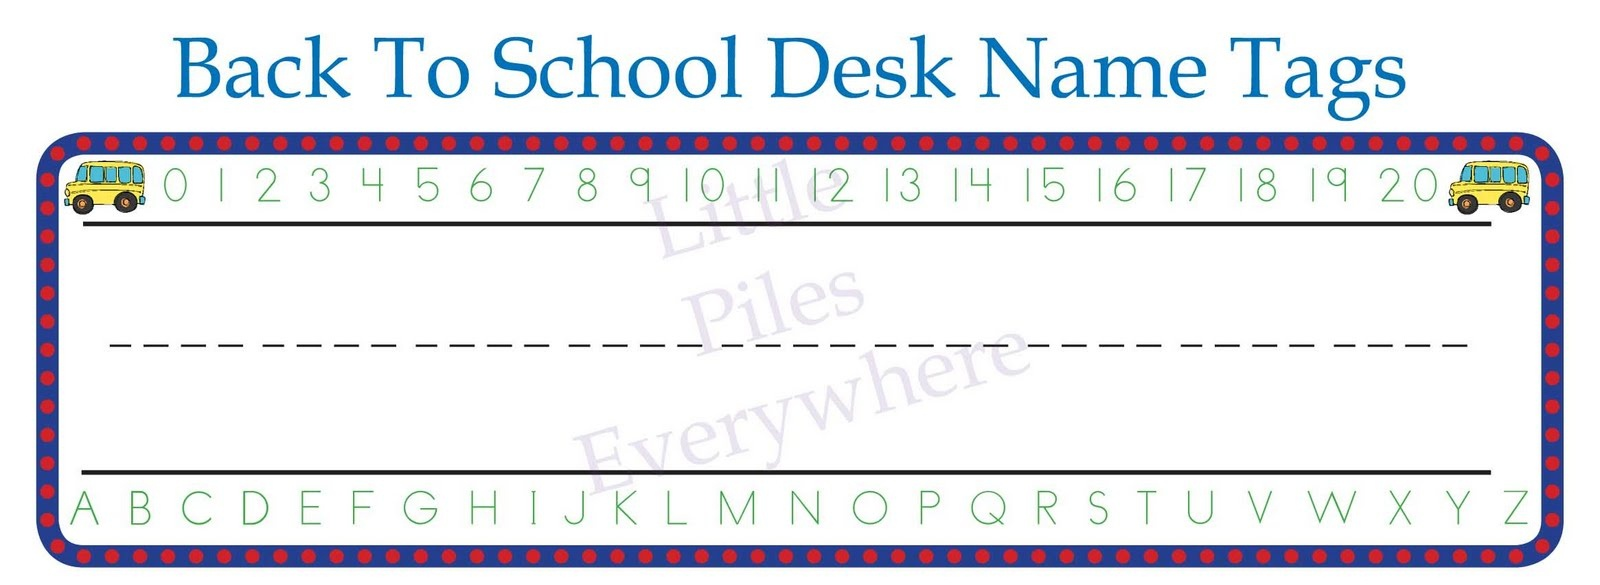 School Desk Tags Back+To+School+Name+Boards | Tag Universe - Free Printable Desk Name Plates For Students